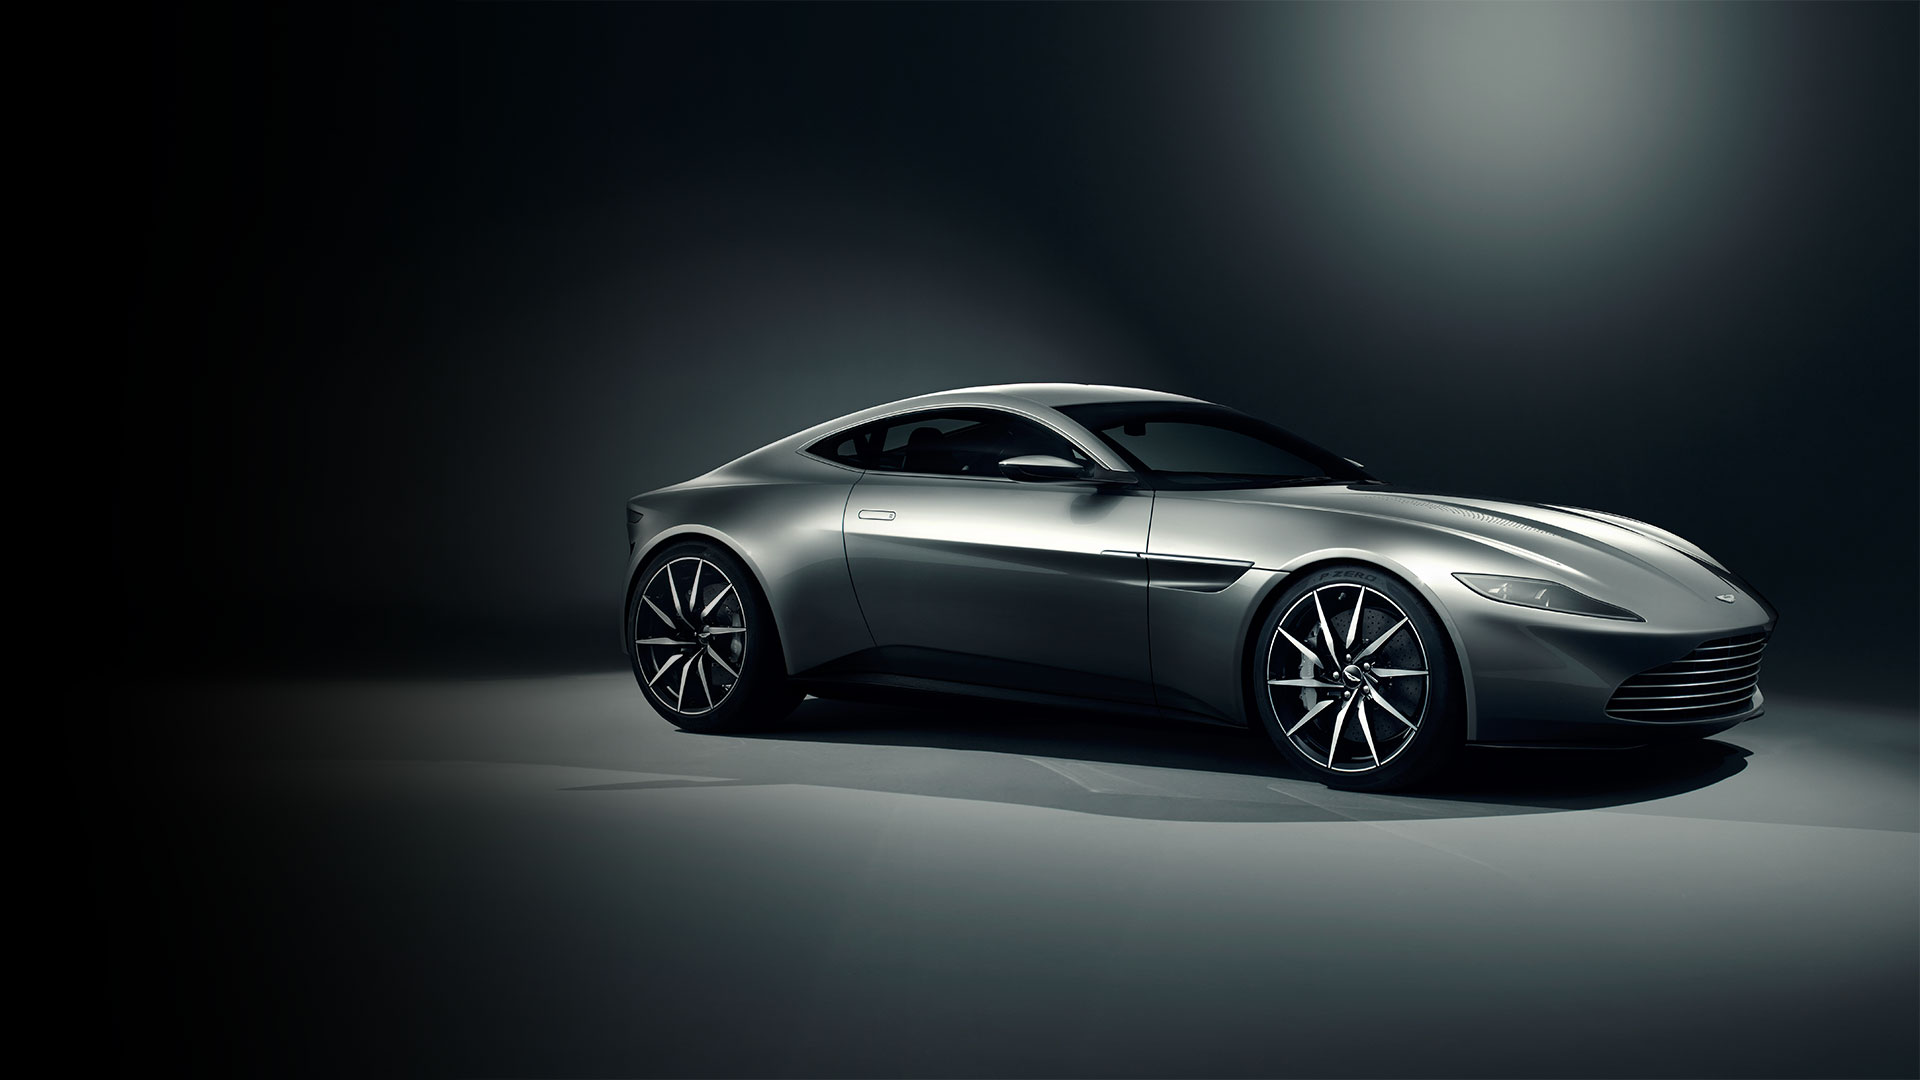 New Car For Jb 007 Aston Martin Db10 The Black Campbell